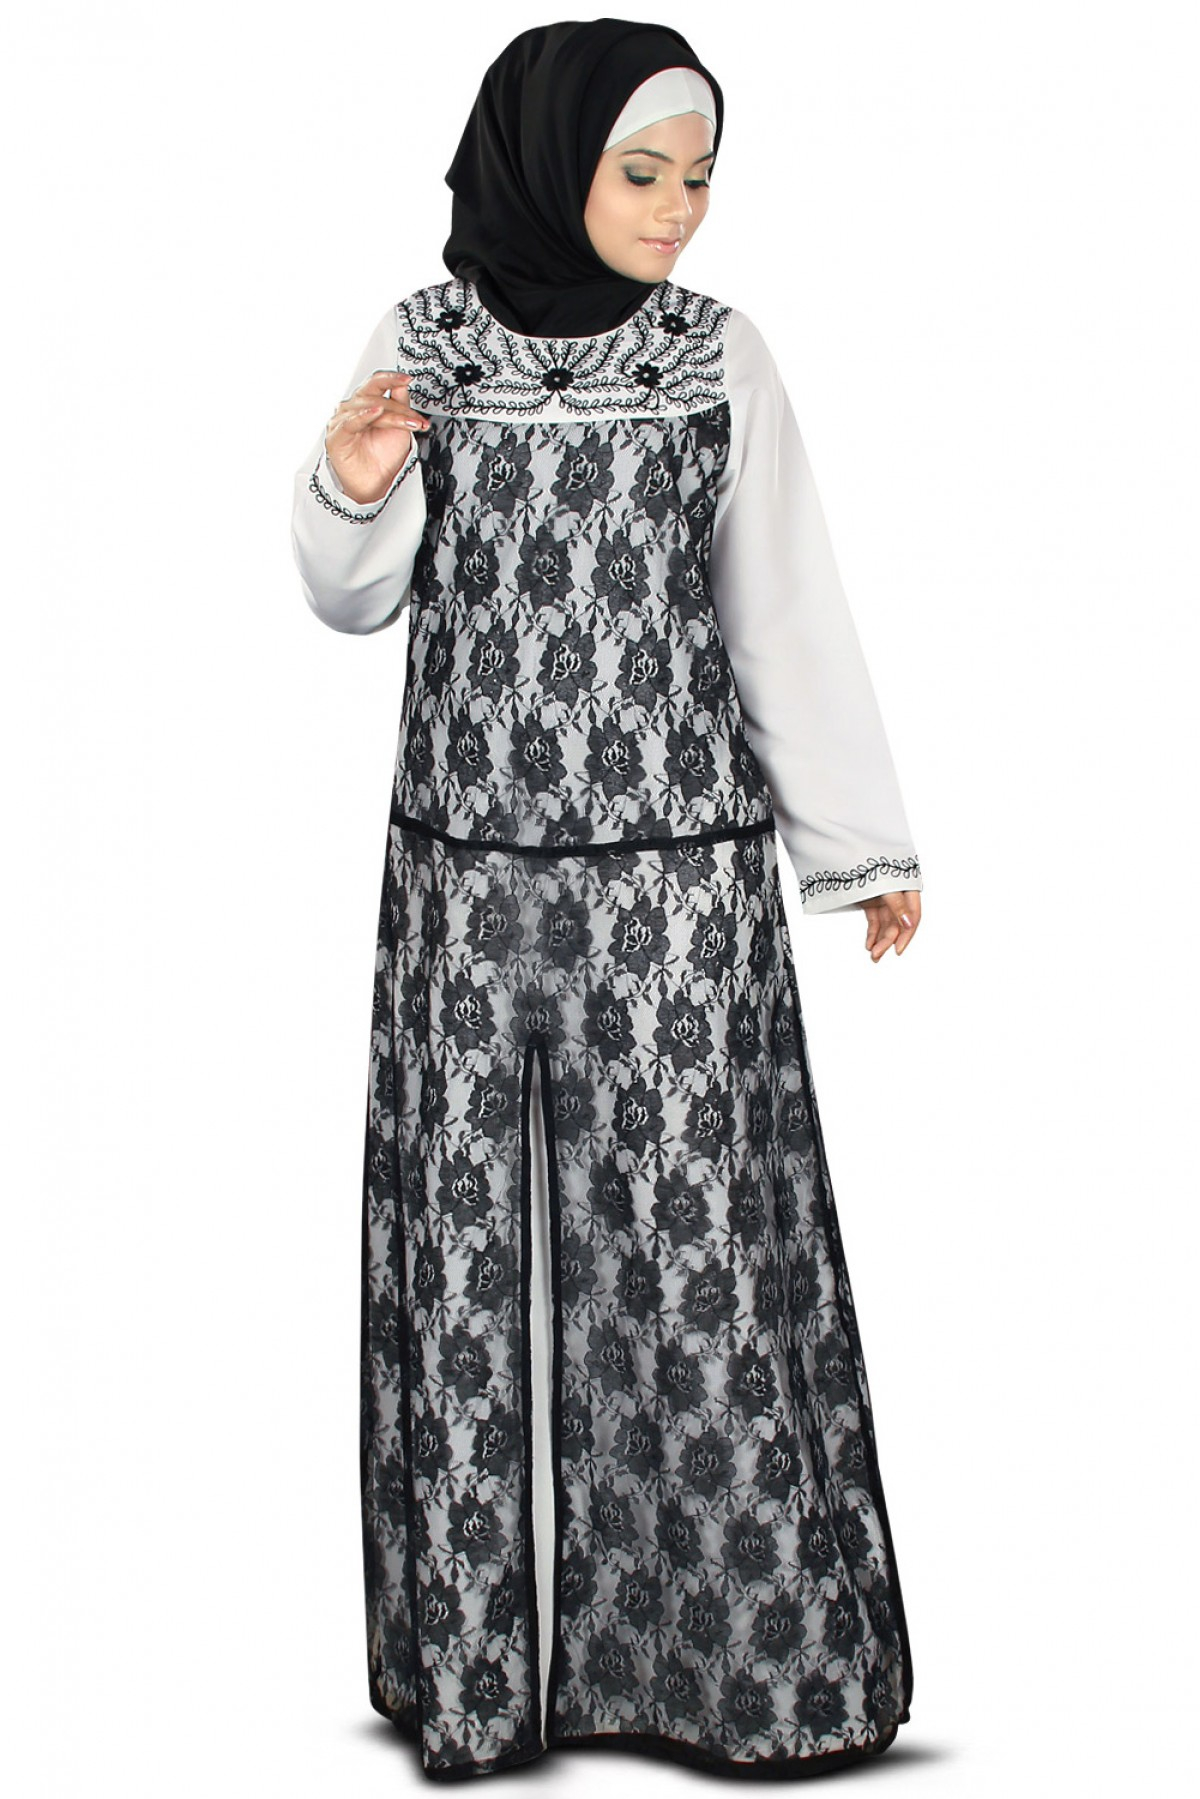 Abaya Embroidery Patterns Net And Polyester Embroidery Party Wear Abayas In Black And White Colour